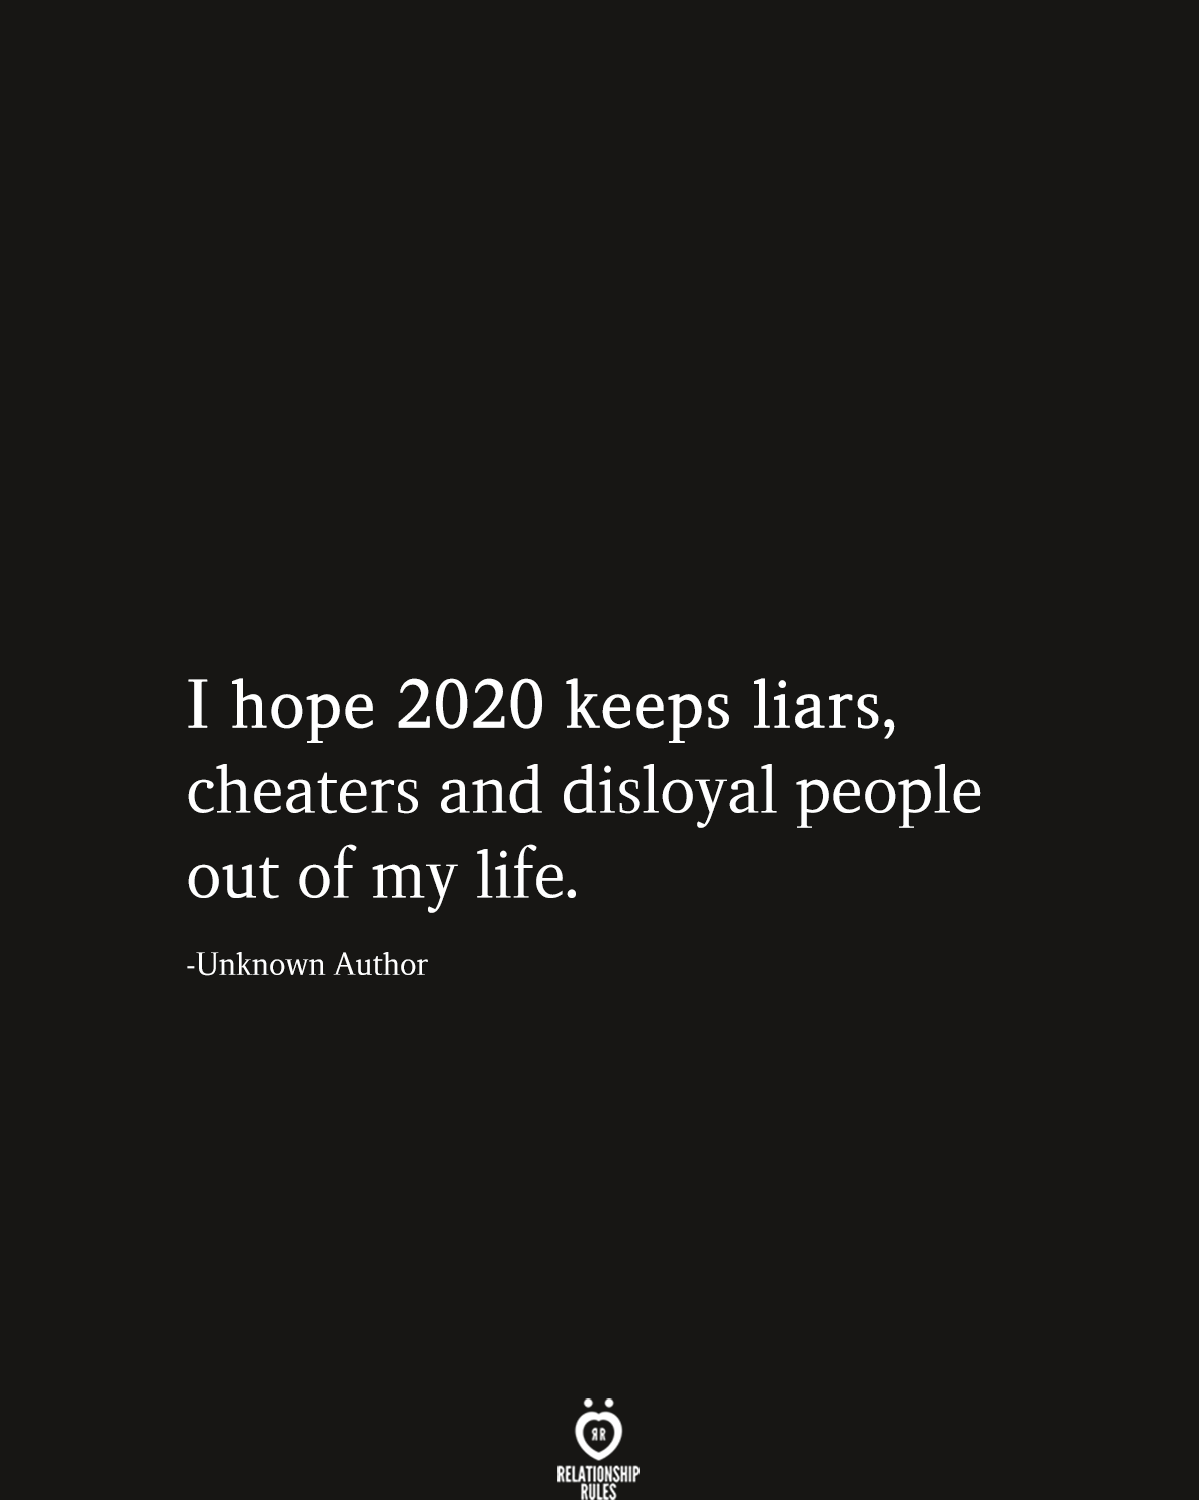 I Hope 2020 Keeps Liars, Cheaters And Disloyal People Out Of My Life #2020quotes